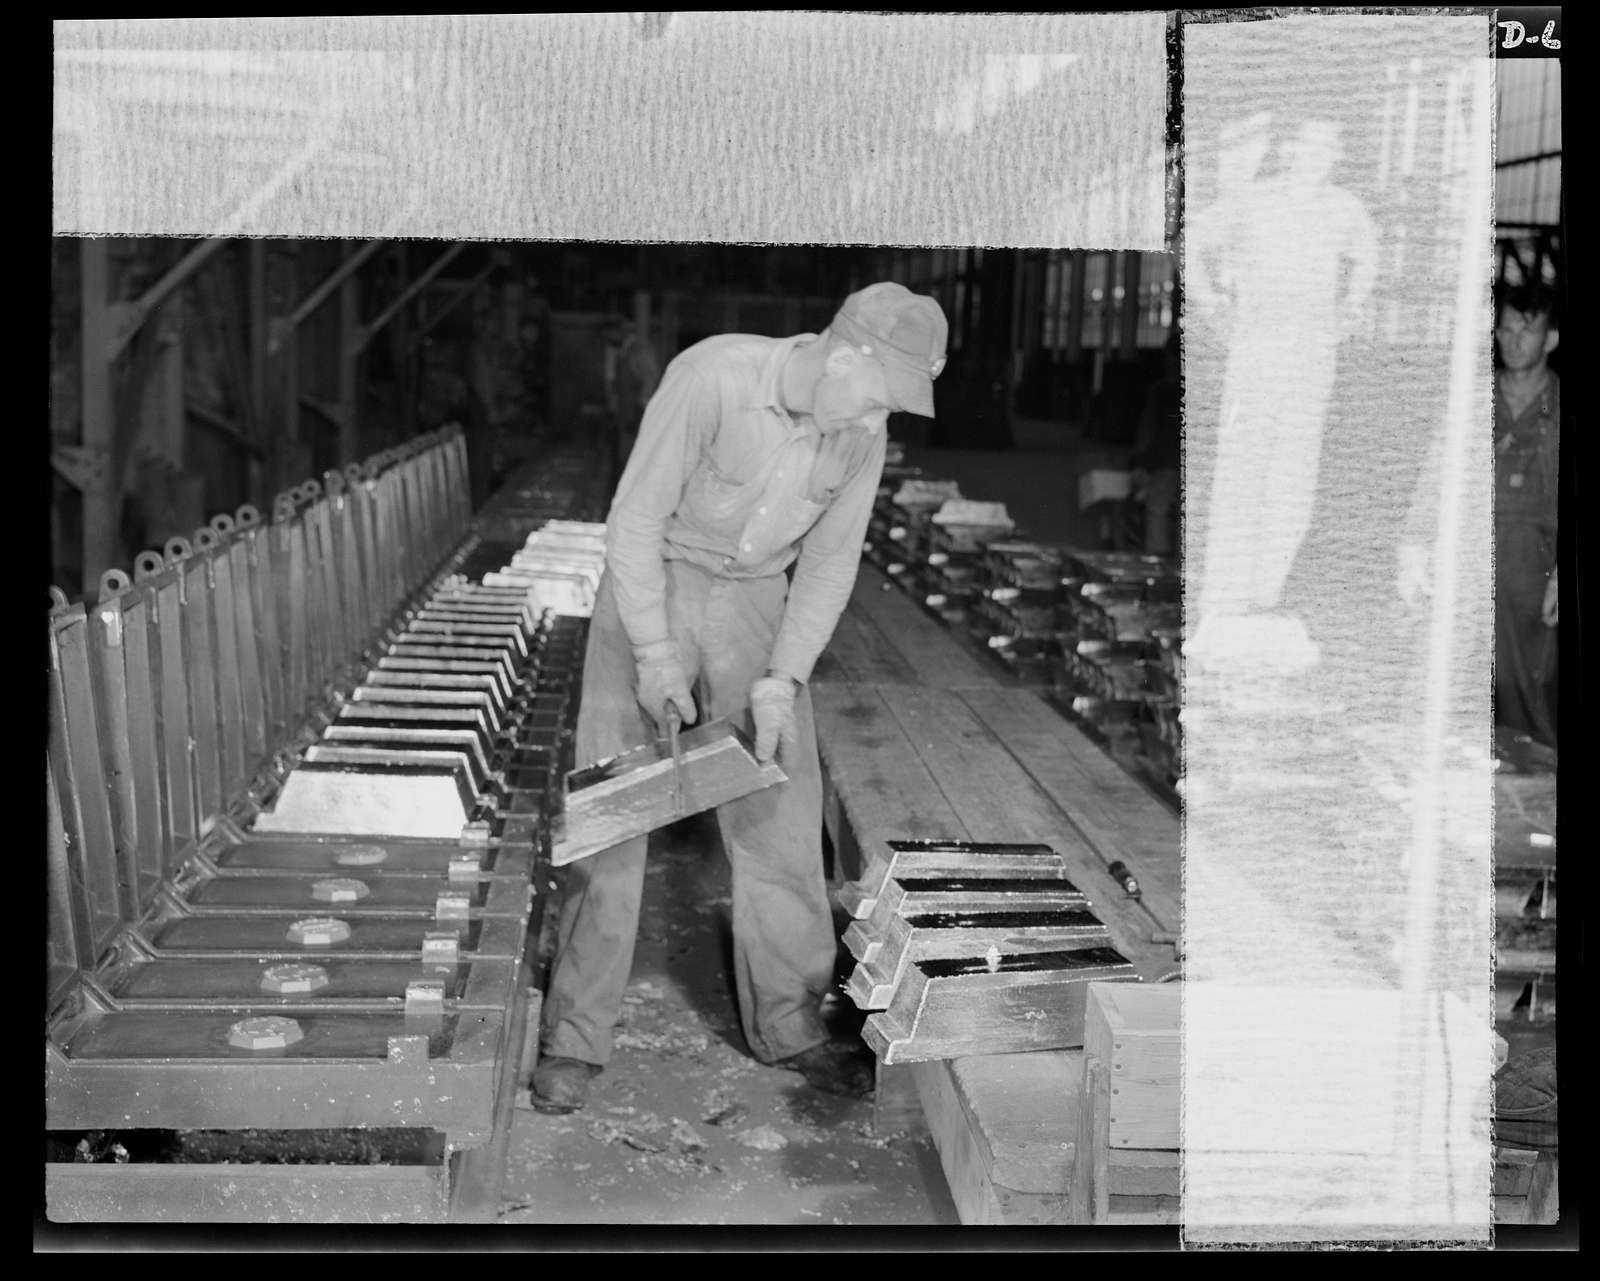 "Production. Tin smelting. Pure tin in the form of ""bars"" is removed from the molds at a Southern smelter. The bars had previously been scrapped and trimmed to remove all excess metal for remelting. The smelter, the most modern in the world, extracts pure metal from South American ore"